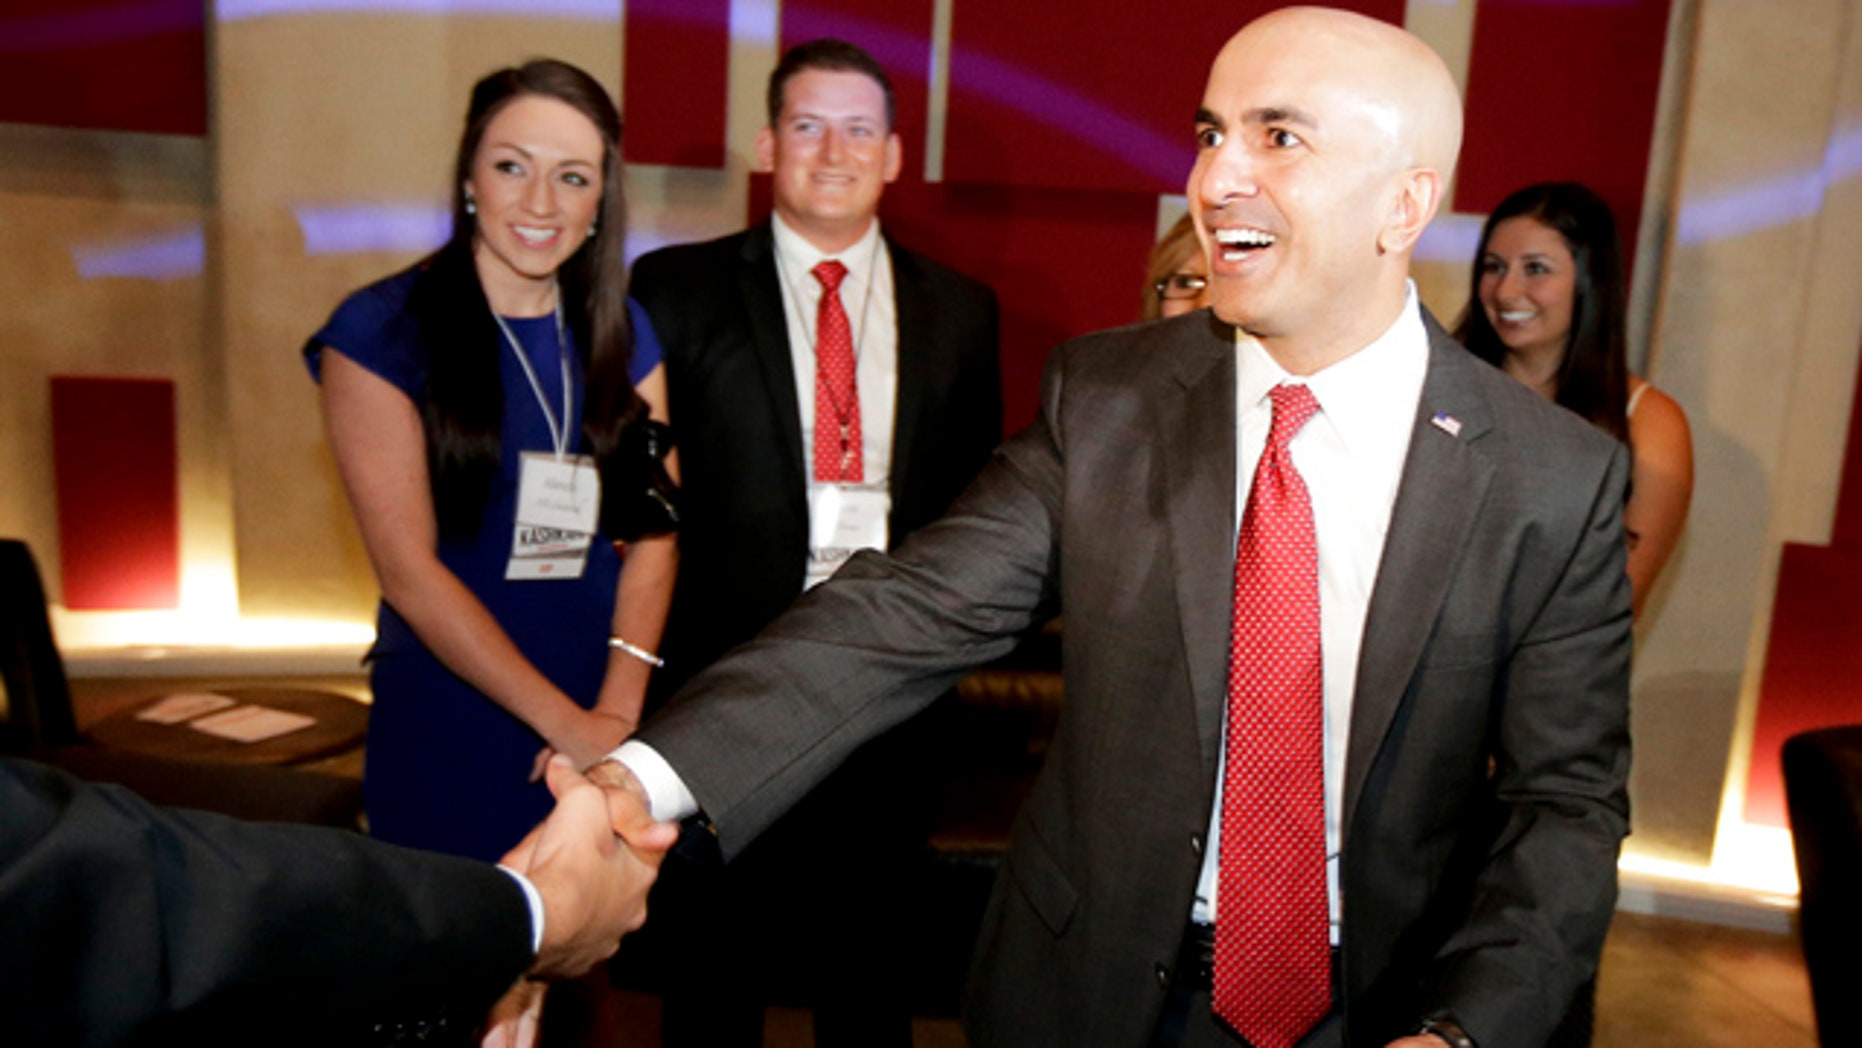 June 3, 2014: California Republican Gubernatorial Candidate Neel Kashkari greets supporters during an election night party at the Port Theater in the Corona Del Mar area of Newport Beach, Calif. Two Republicans are vying for the chance to challenge Gov. Jerry Brown in November. (AP Photo/Chris Carlson)